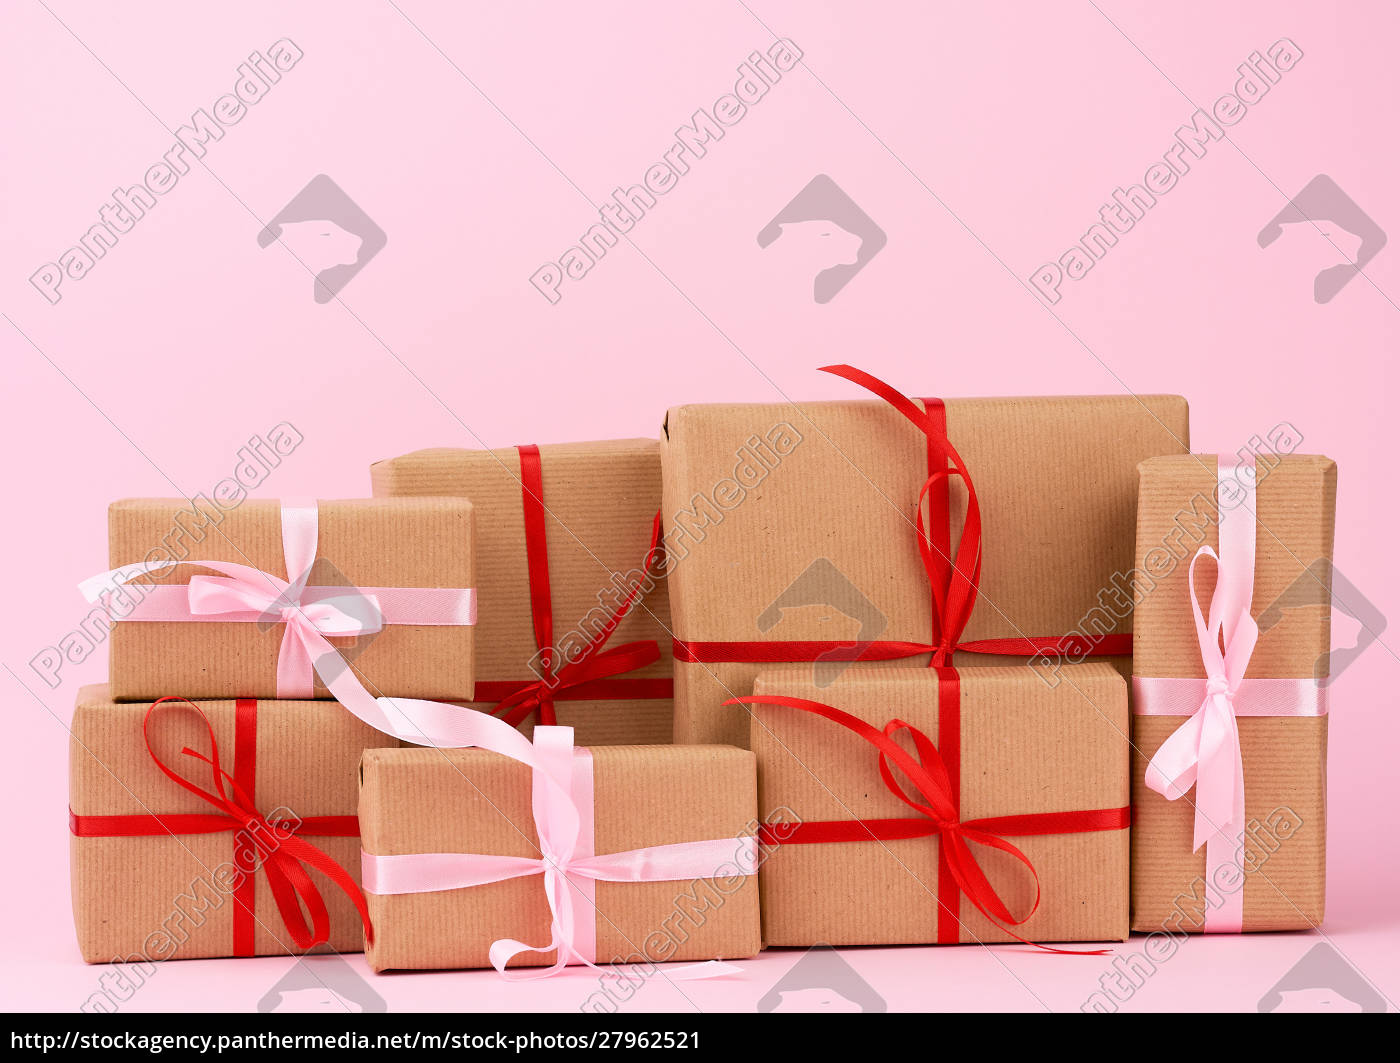 stack, of, gifts, in, boxes, wrapped - 27962521